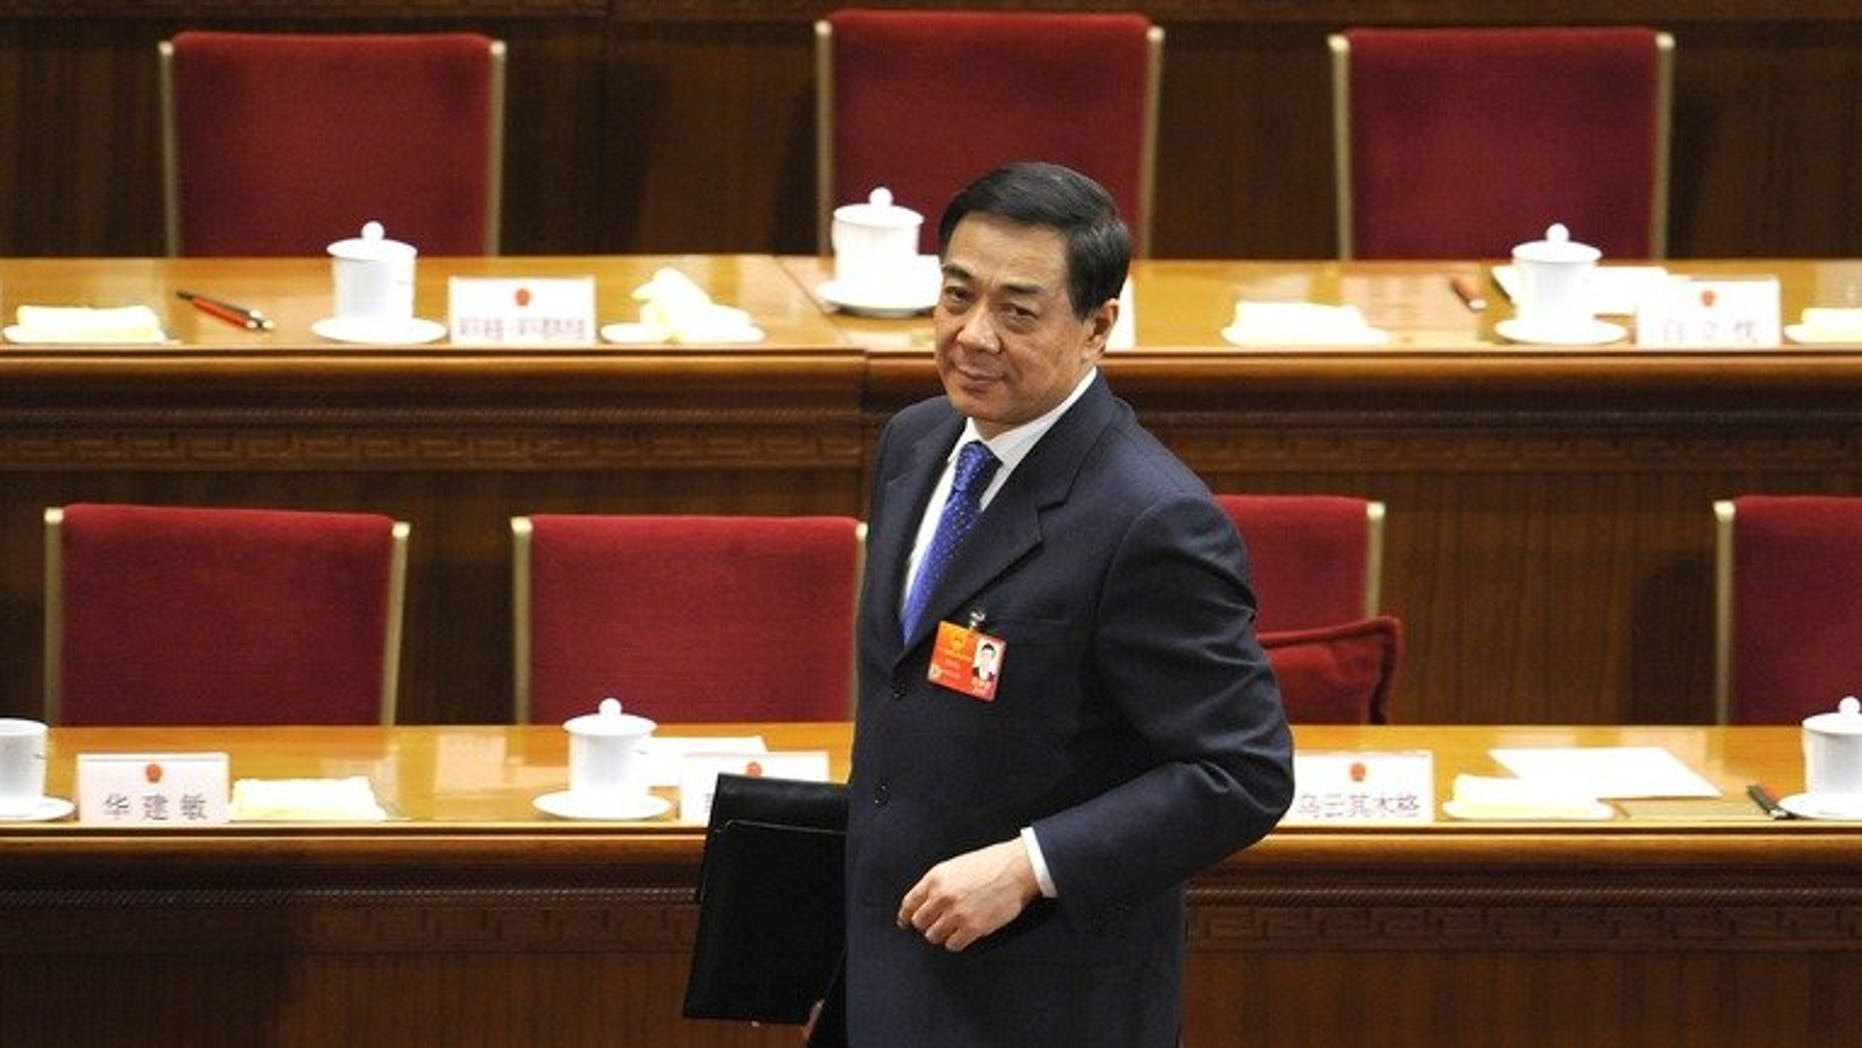 Bo Xilai attends a National People's Congress meeting as the Communist Party secretary of Chongqing, on March 9, 2012. The once-powerful politician has been indicted for bribery, corruption and abuse of power, the state news agency Xinhua said Thursday.